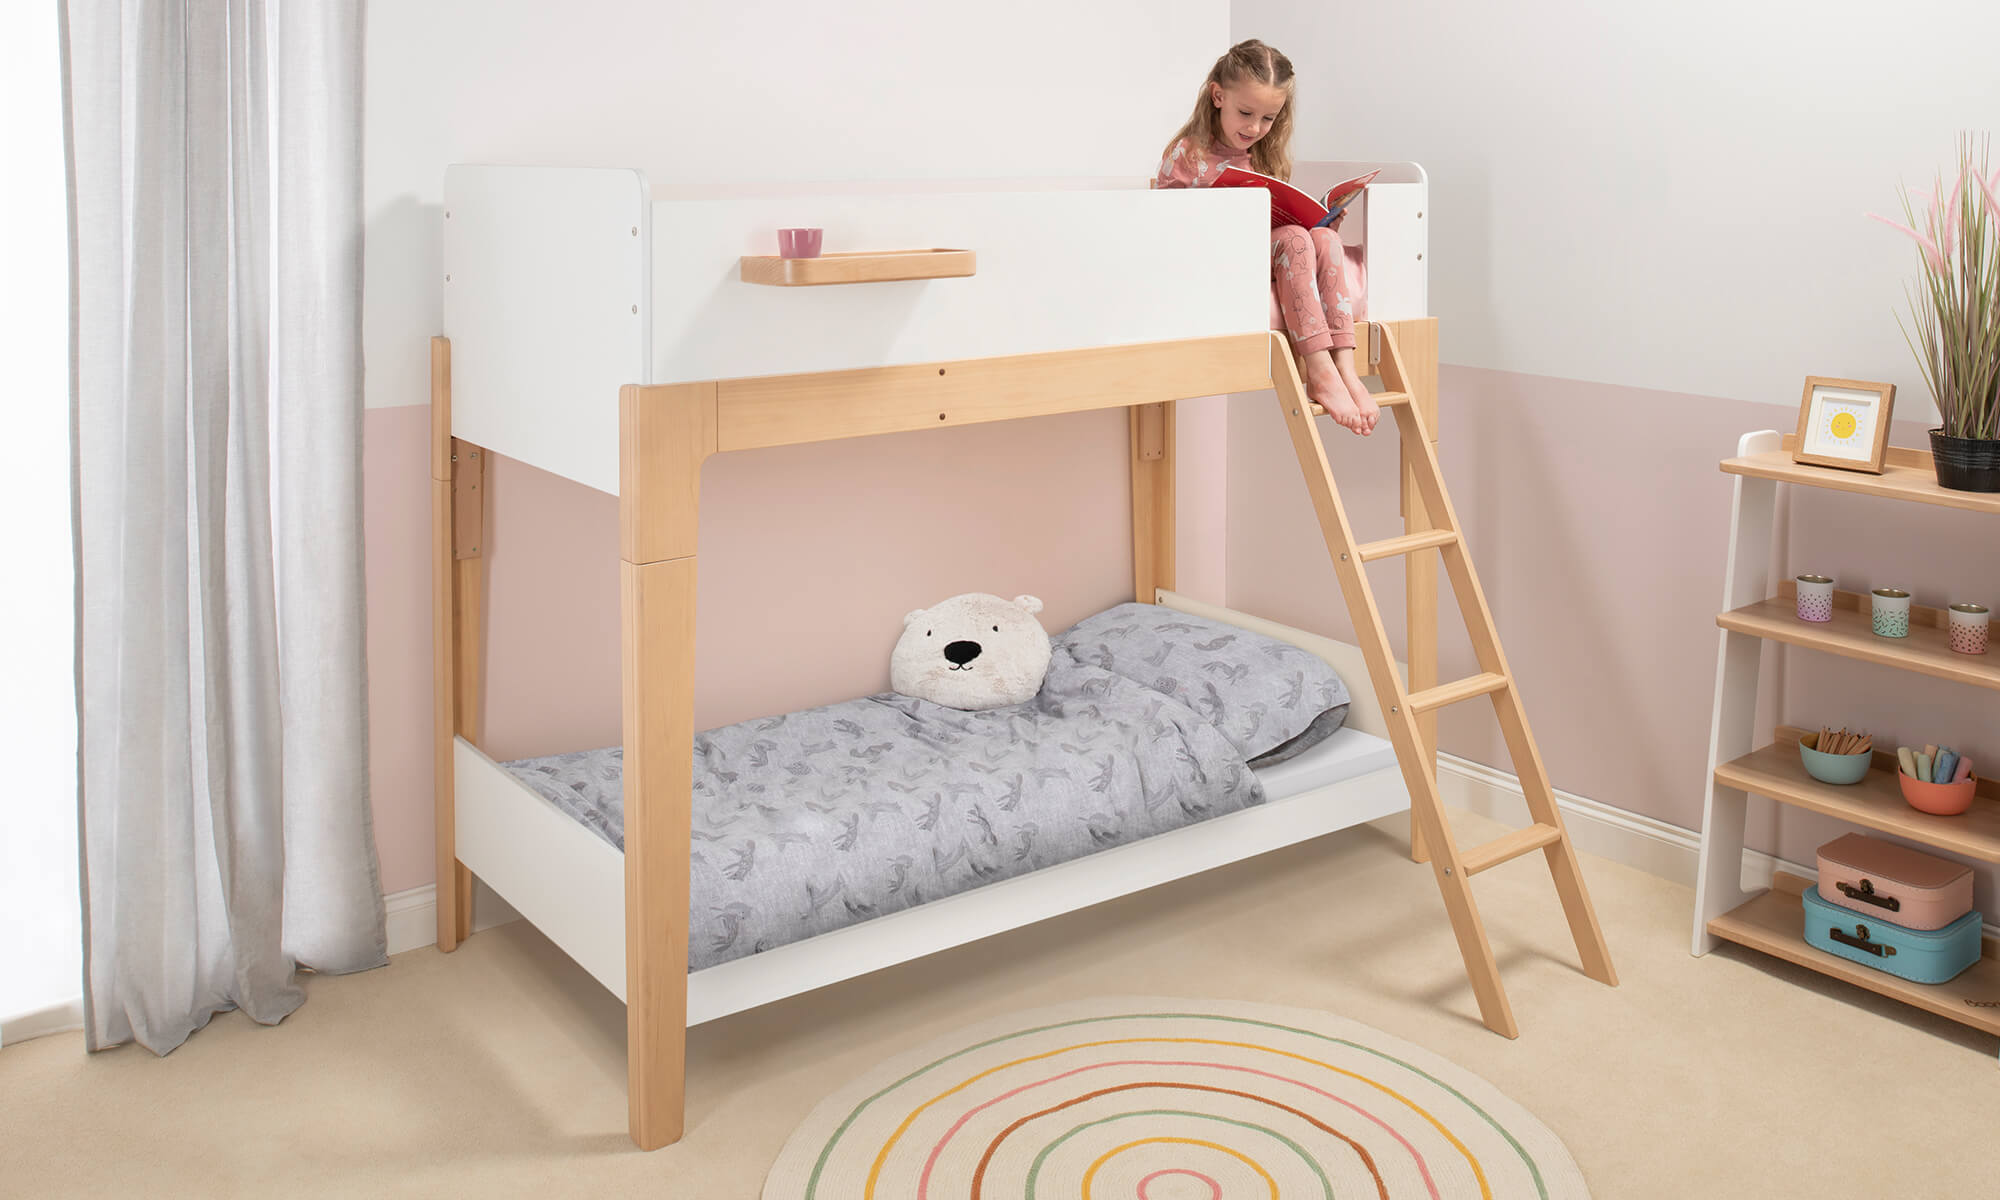 Product_Page_Lifestyles_1000_x_600_Natty_Single_Bunk_Bed_v20_BAAD__2x